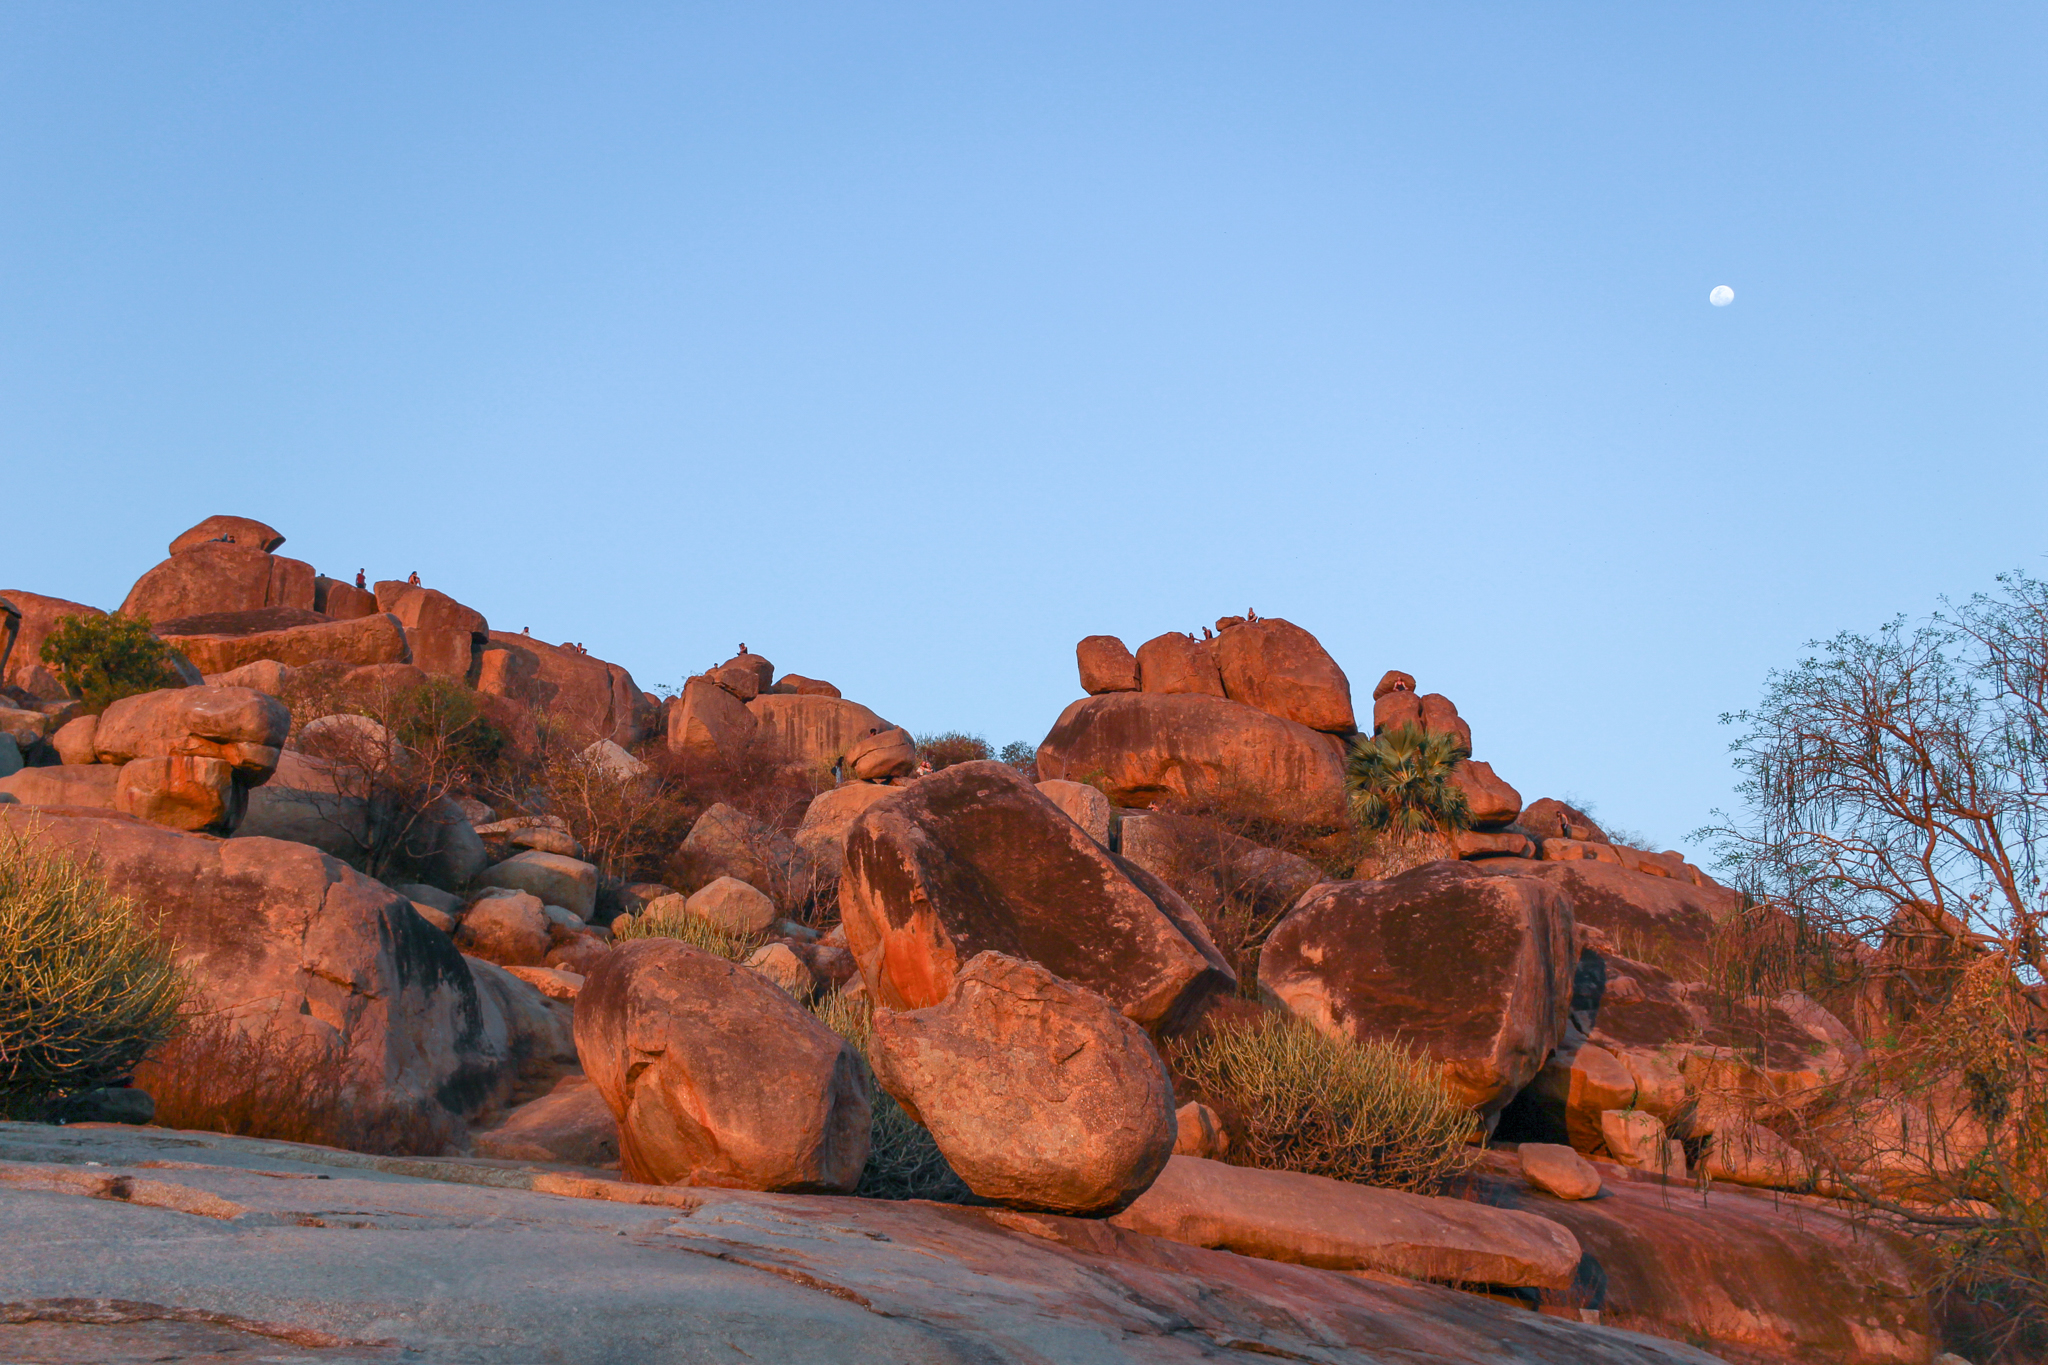 Huge golden boulders with little people on the top enjoying views at sunset